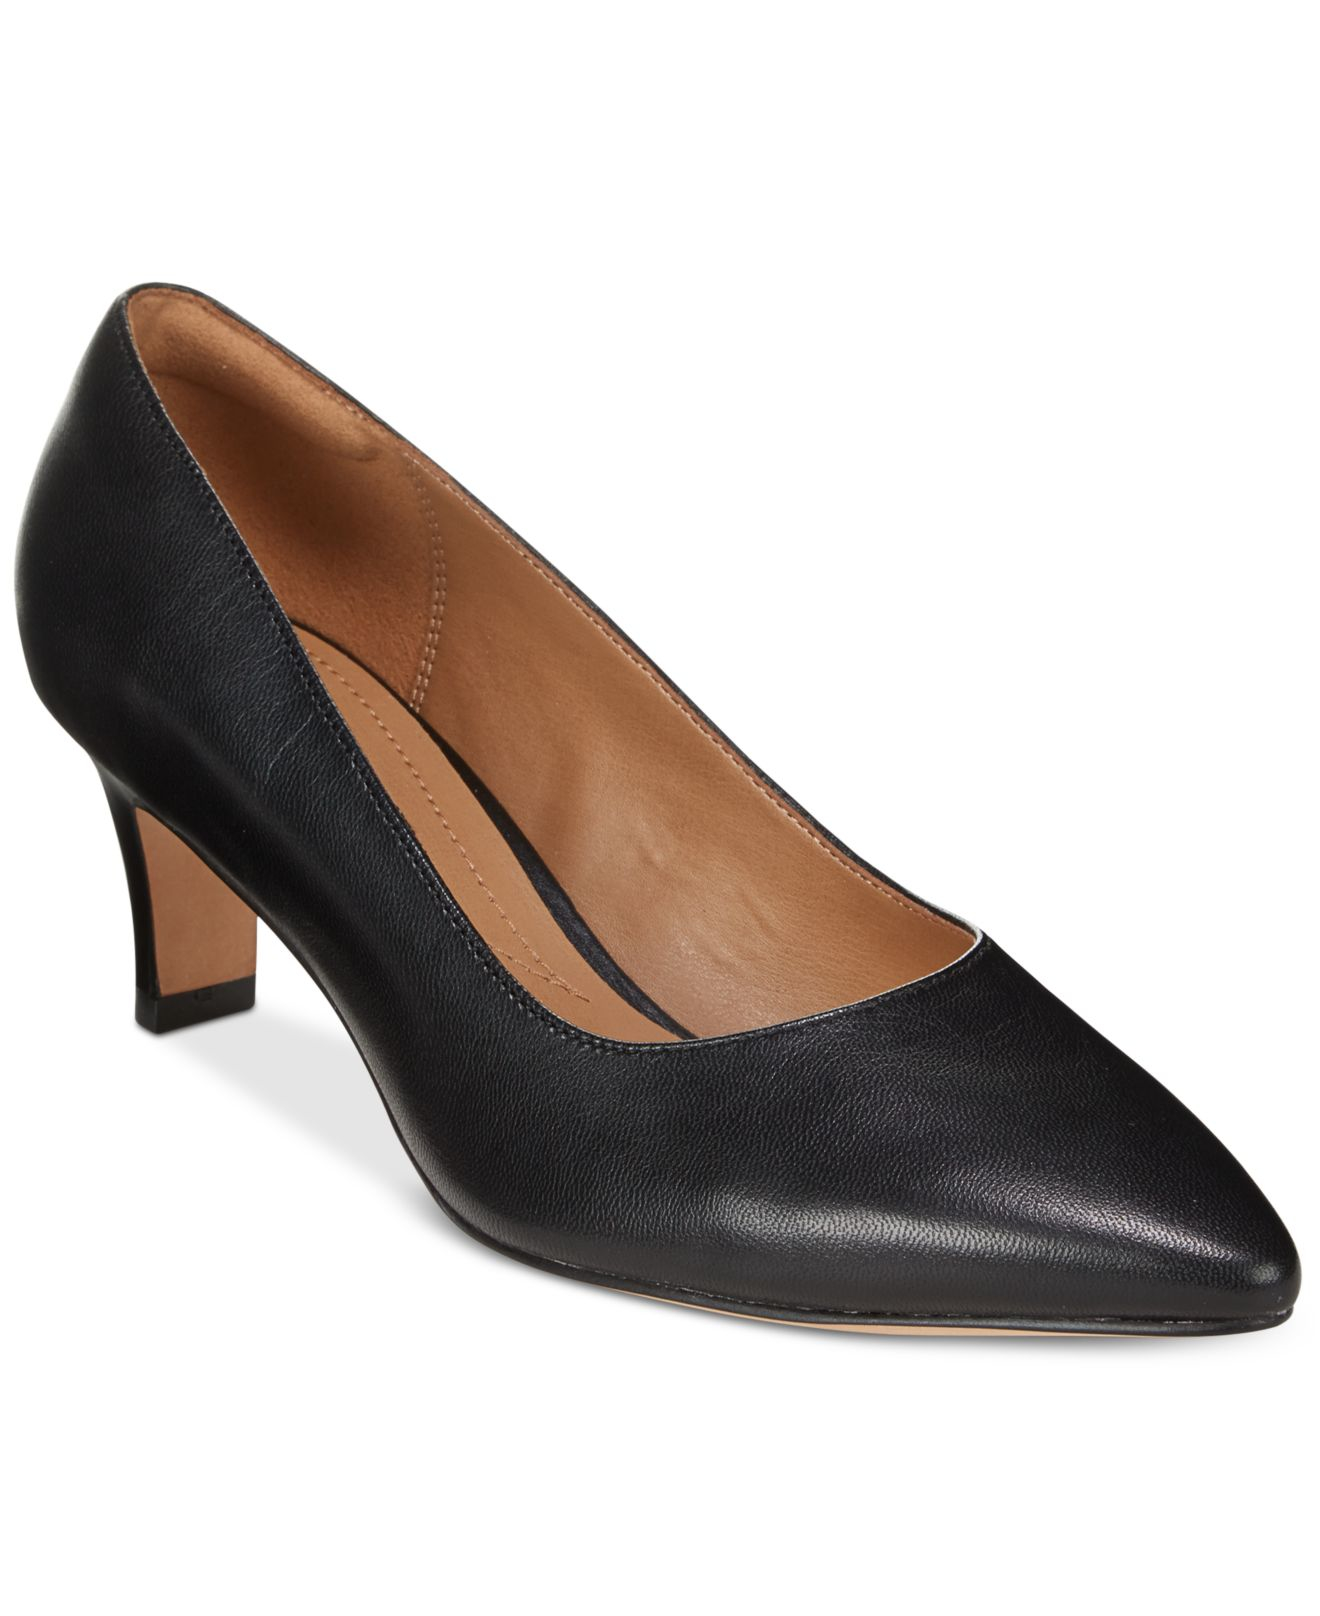 Aerosoles is your supply for women's high-quality, fashion forward shoes and boots at affordable costs – as well as maintaining comfort. Aerosoles is inspired by .